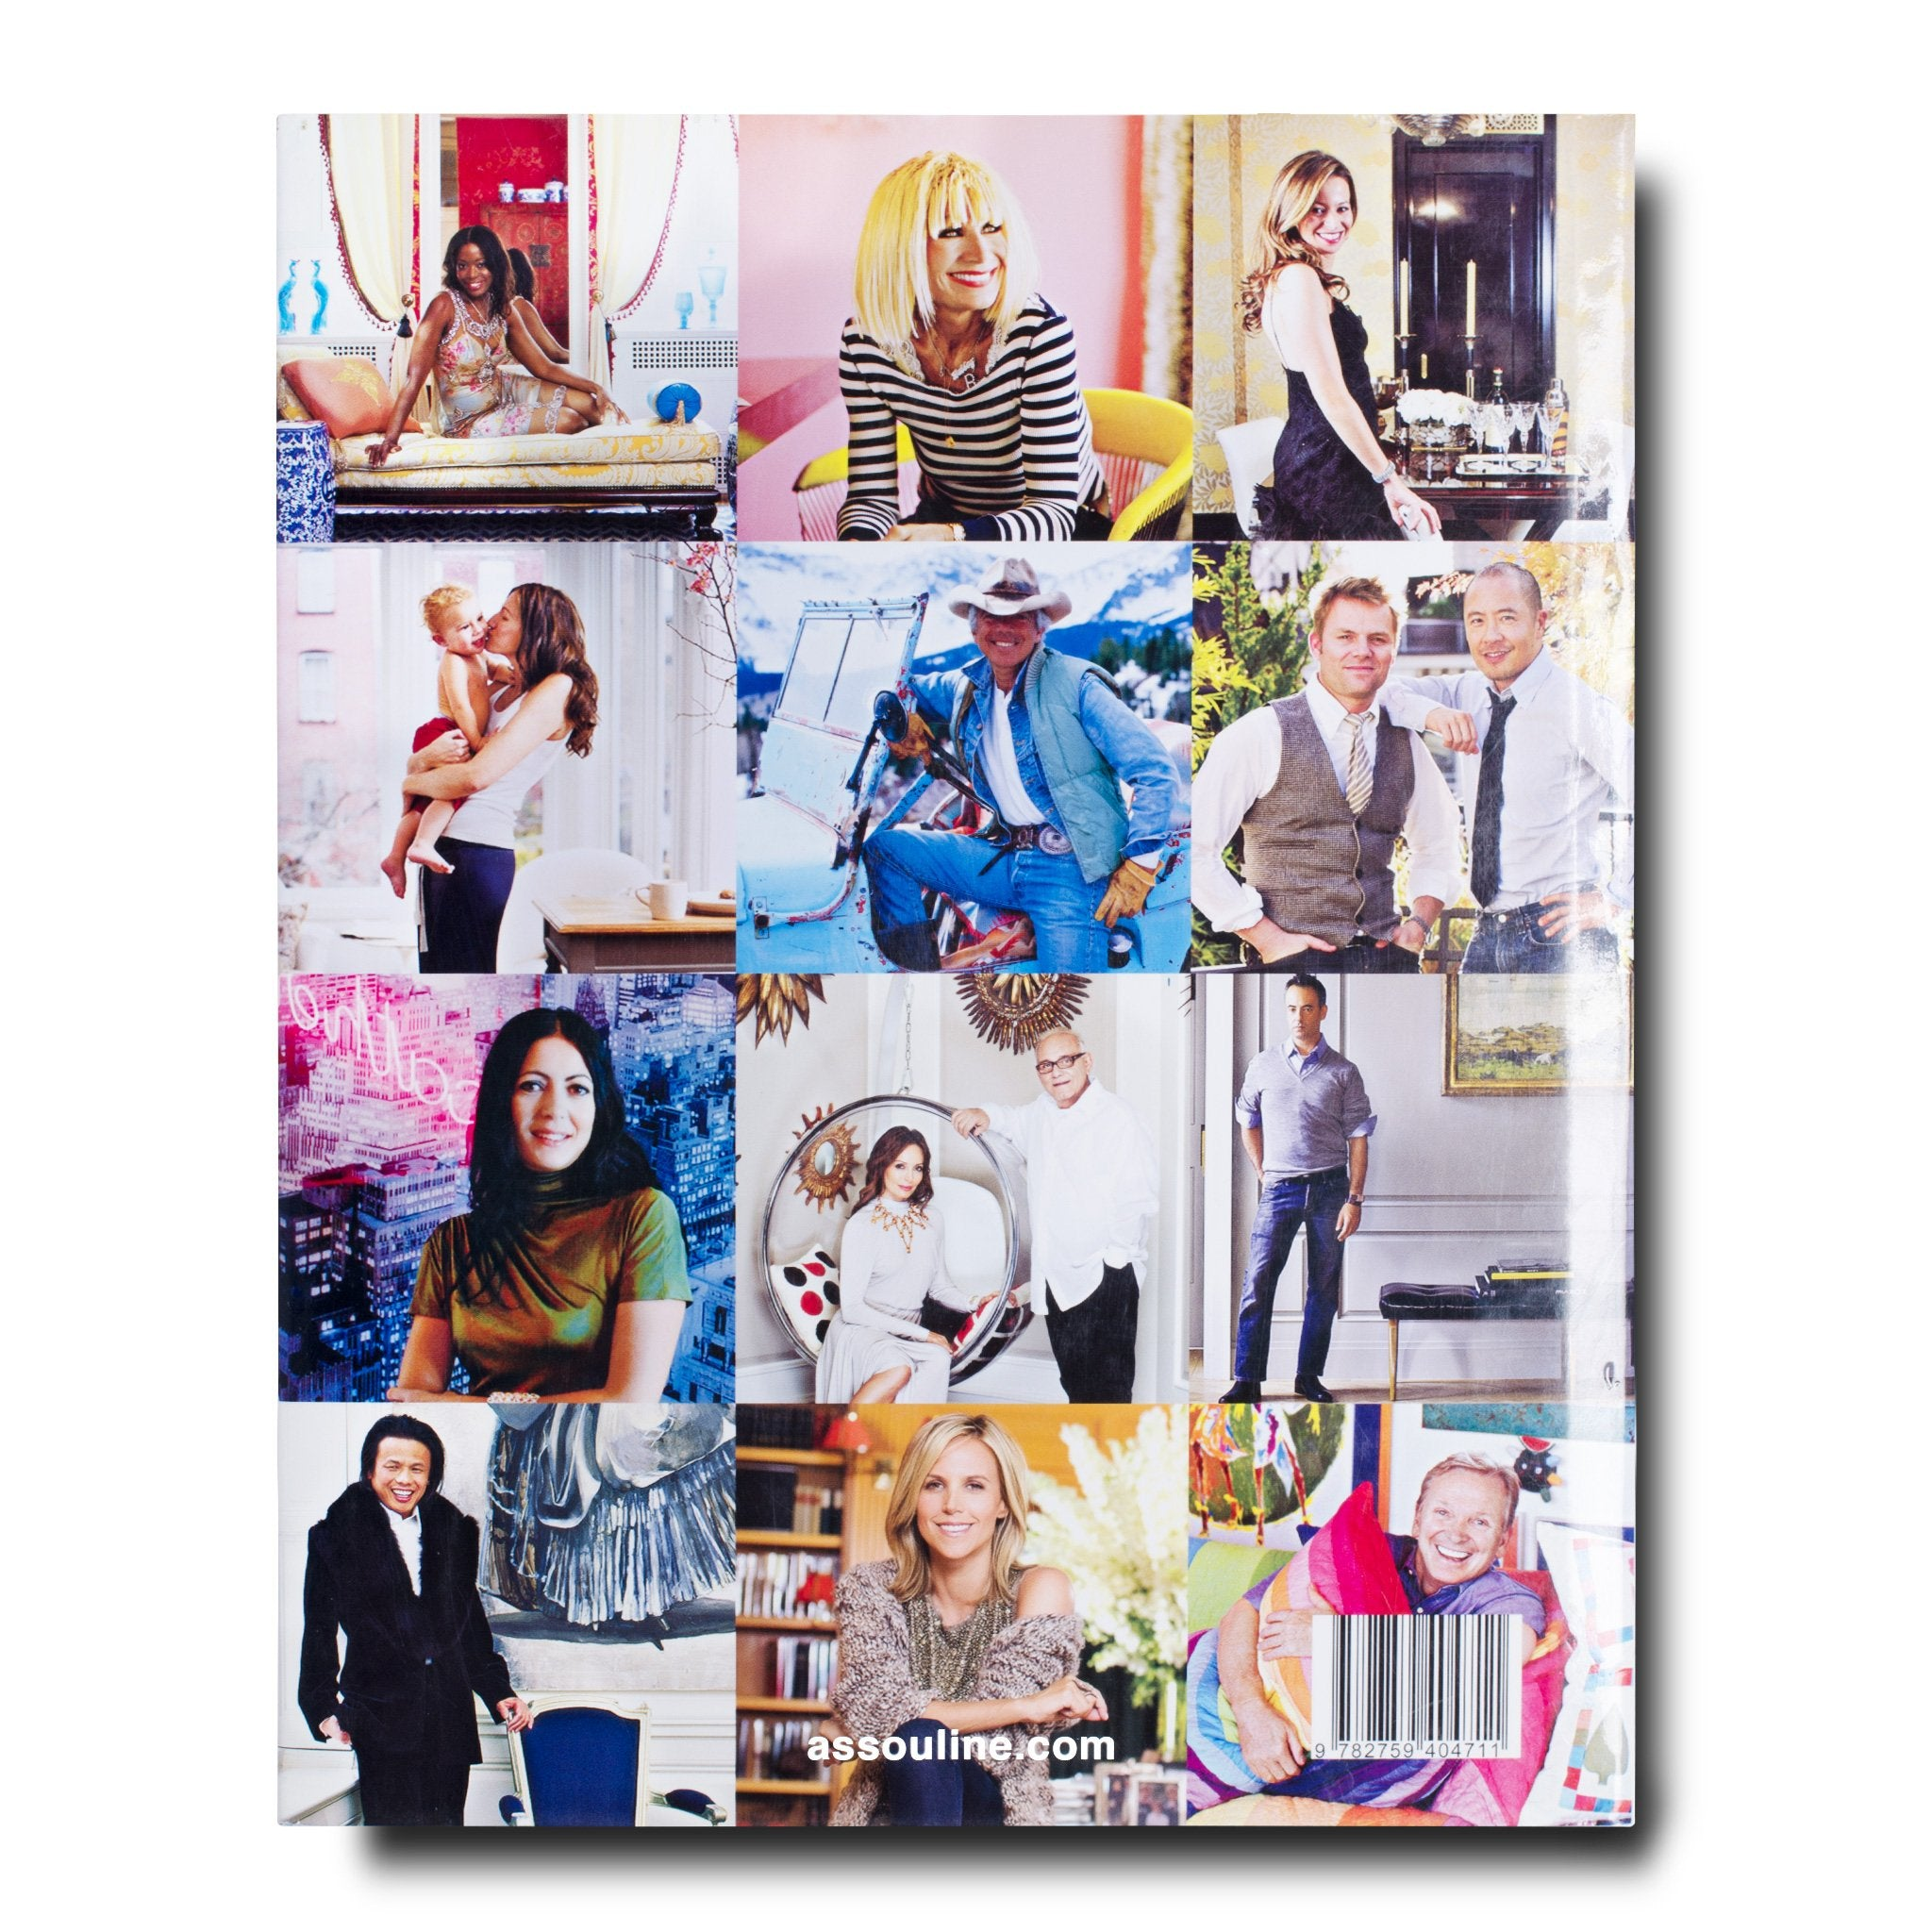 American Fashion Designers at Home book   ASSOULINE